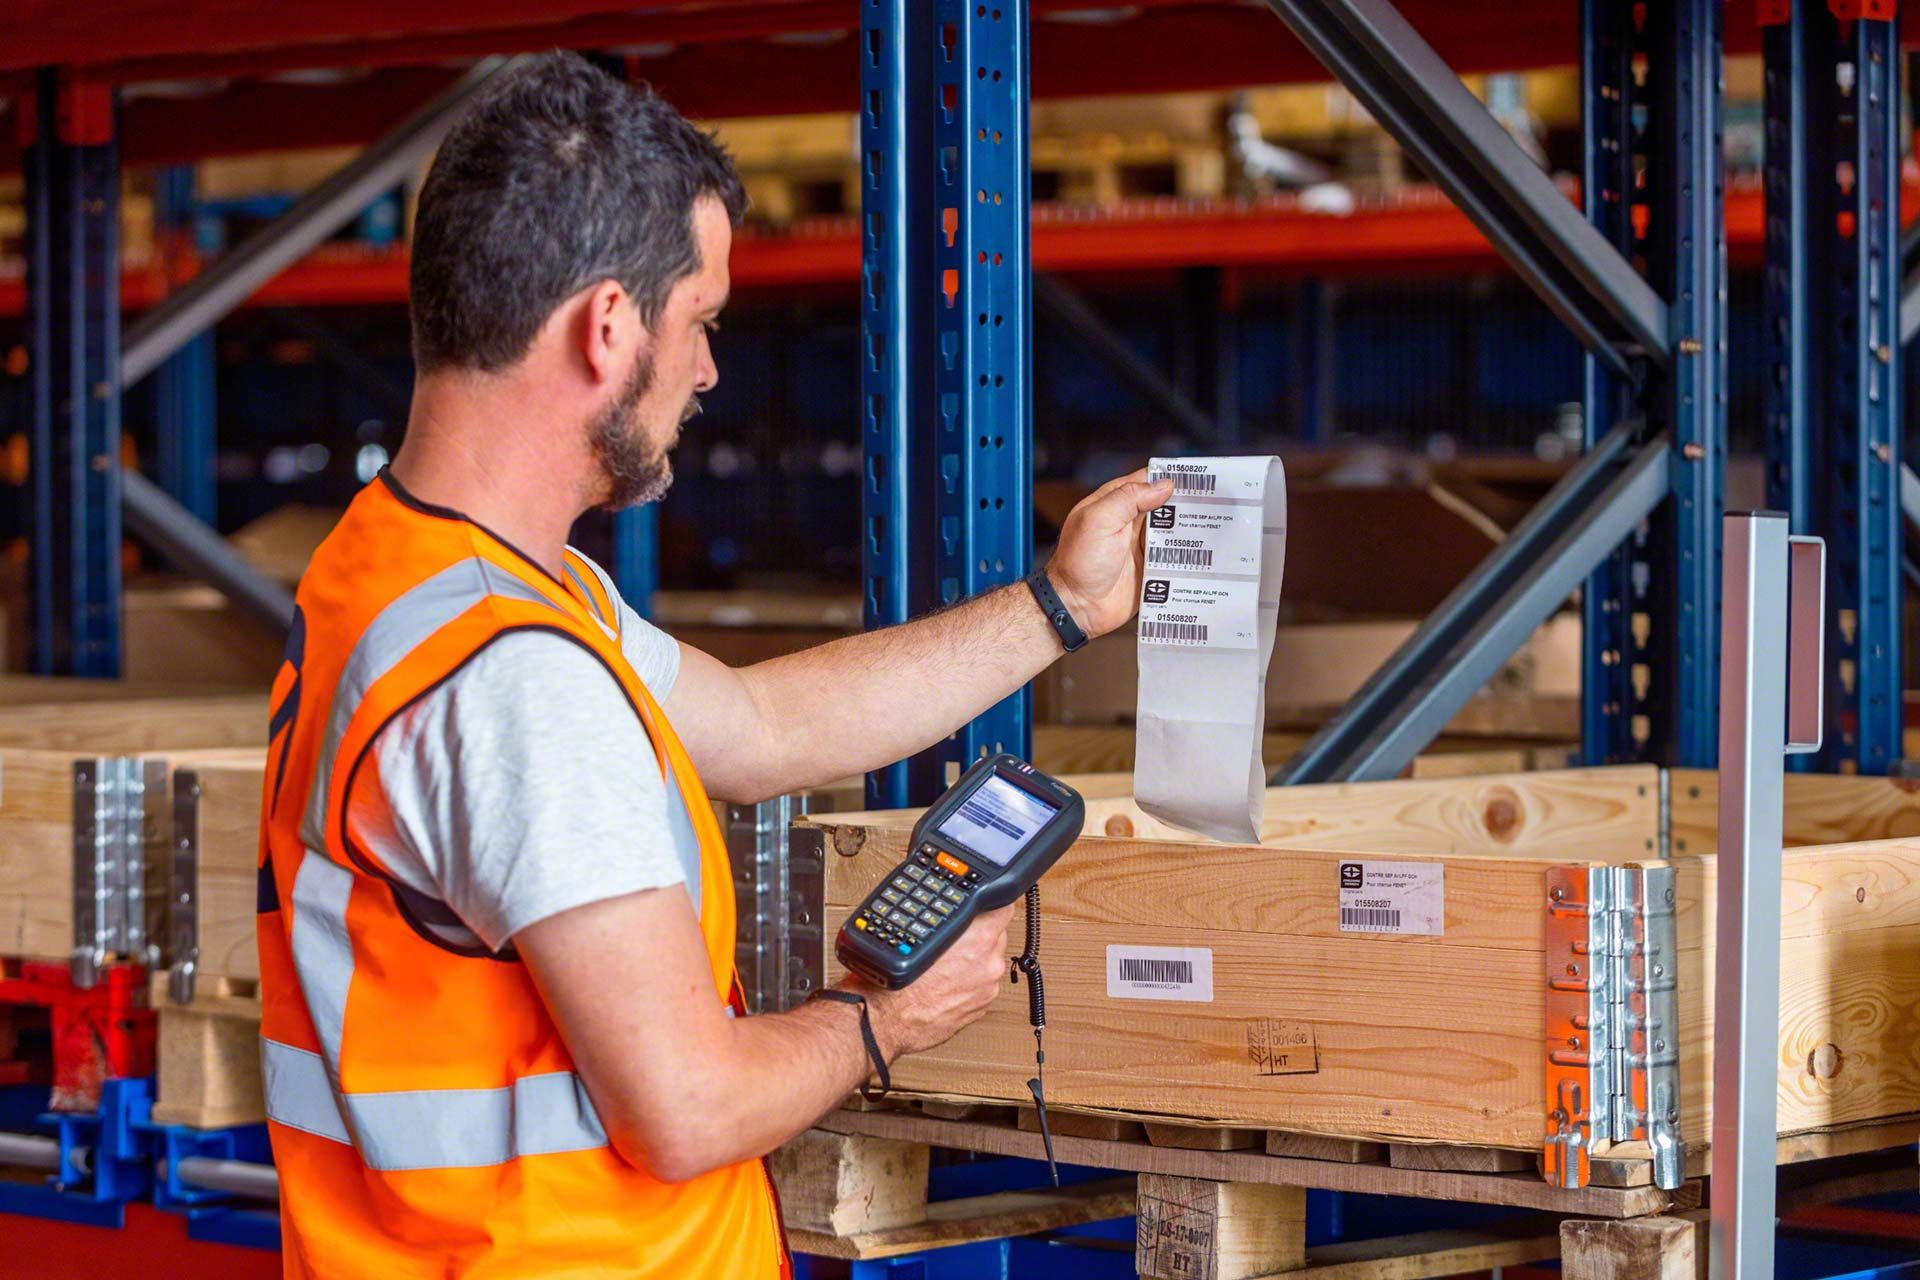 Physical inventory is the operation consisting of manually counting all stock in the warehouse